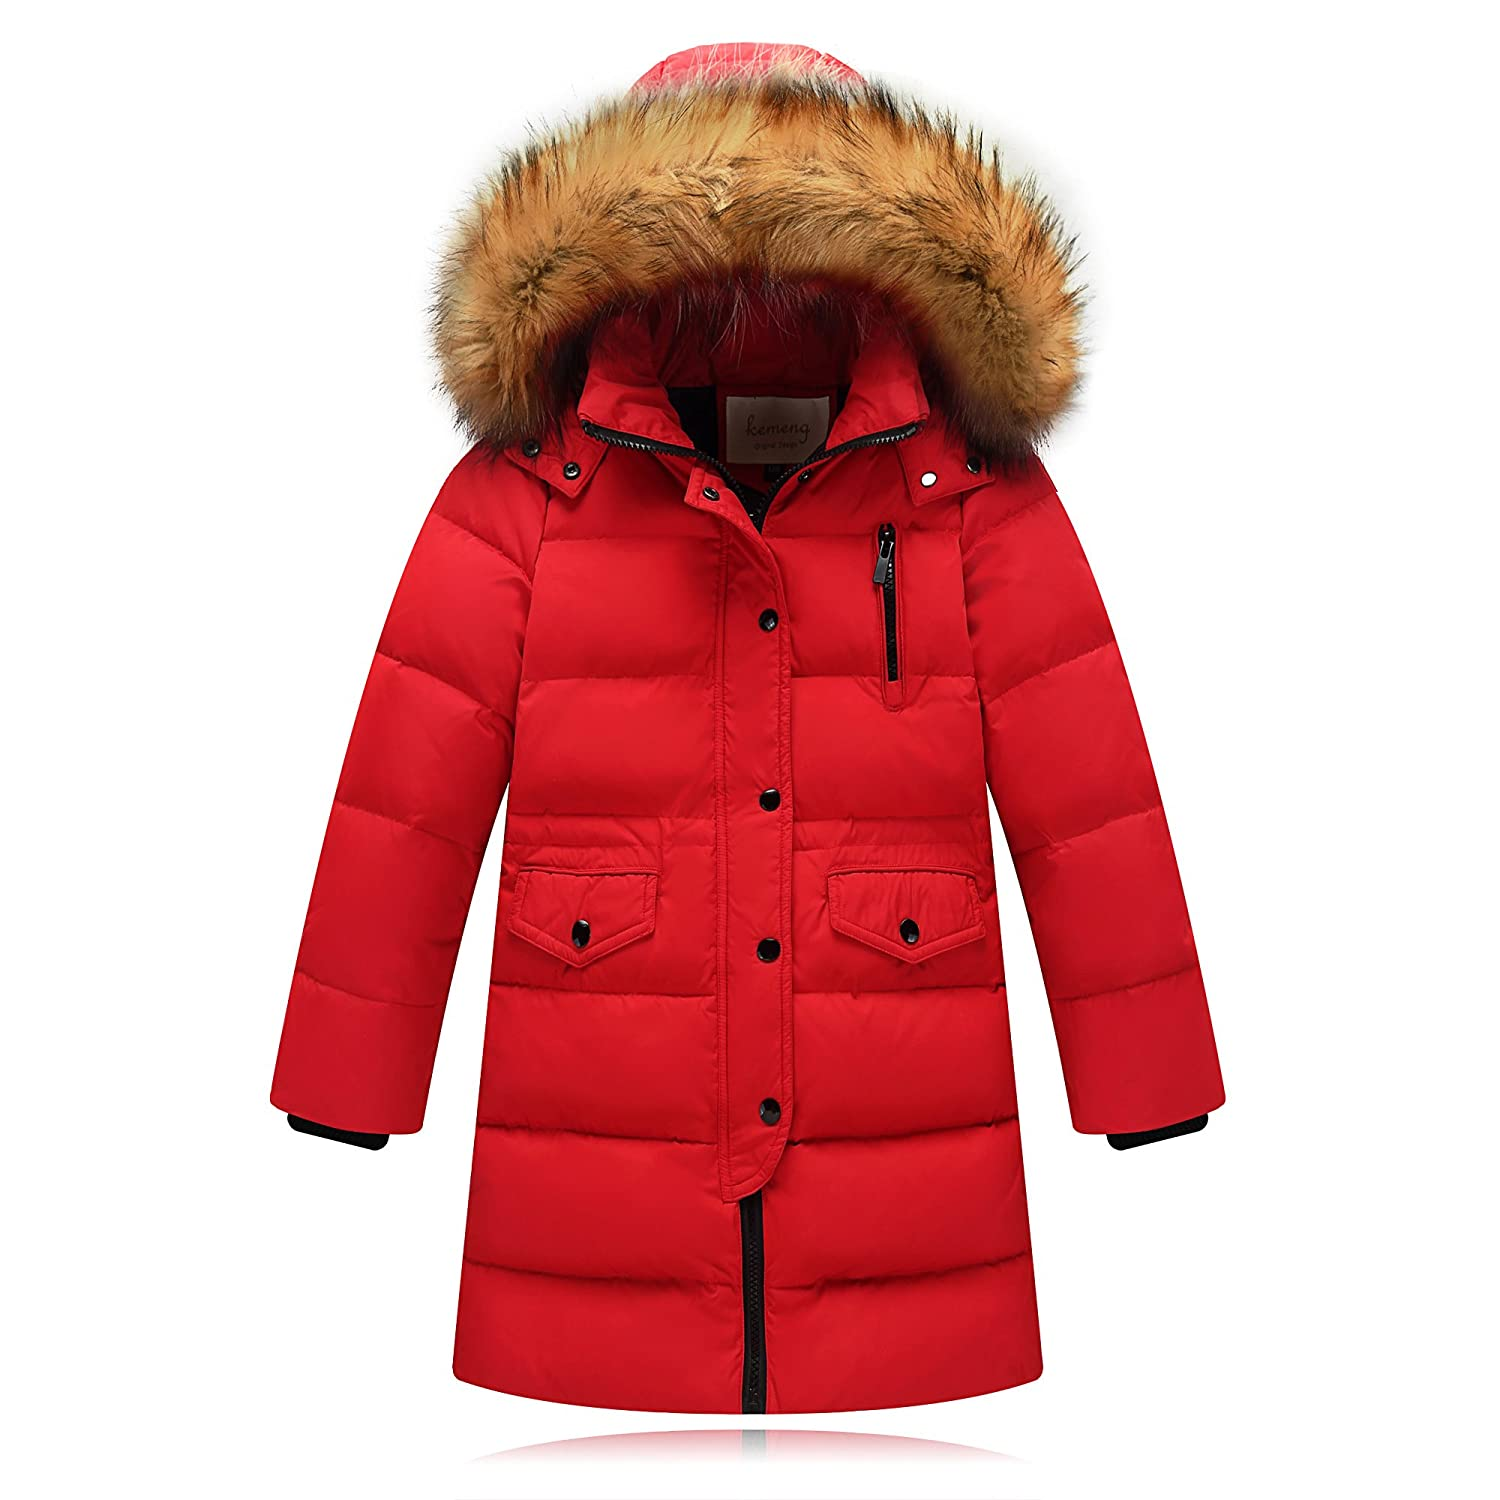 LJYH Big Children Winter Warm Down Parka Thick Hooded Detachable Outwear Coat